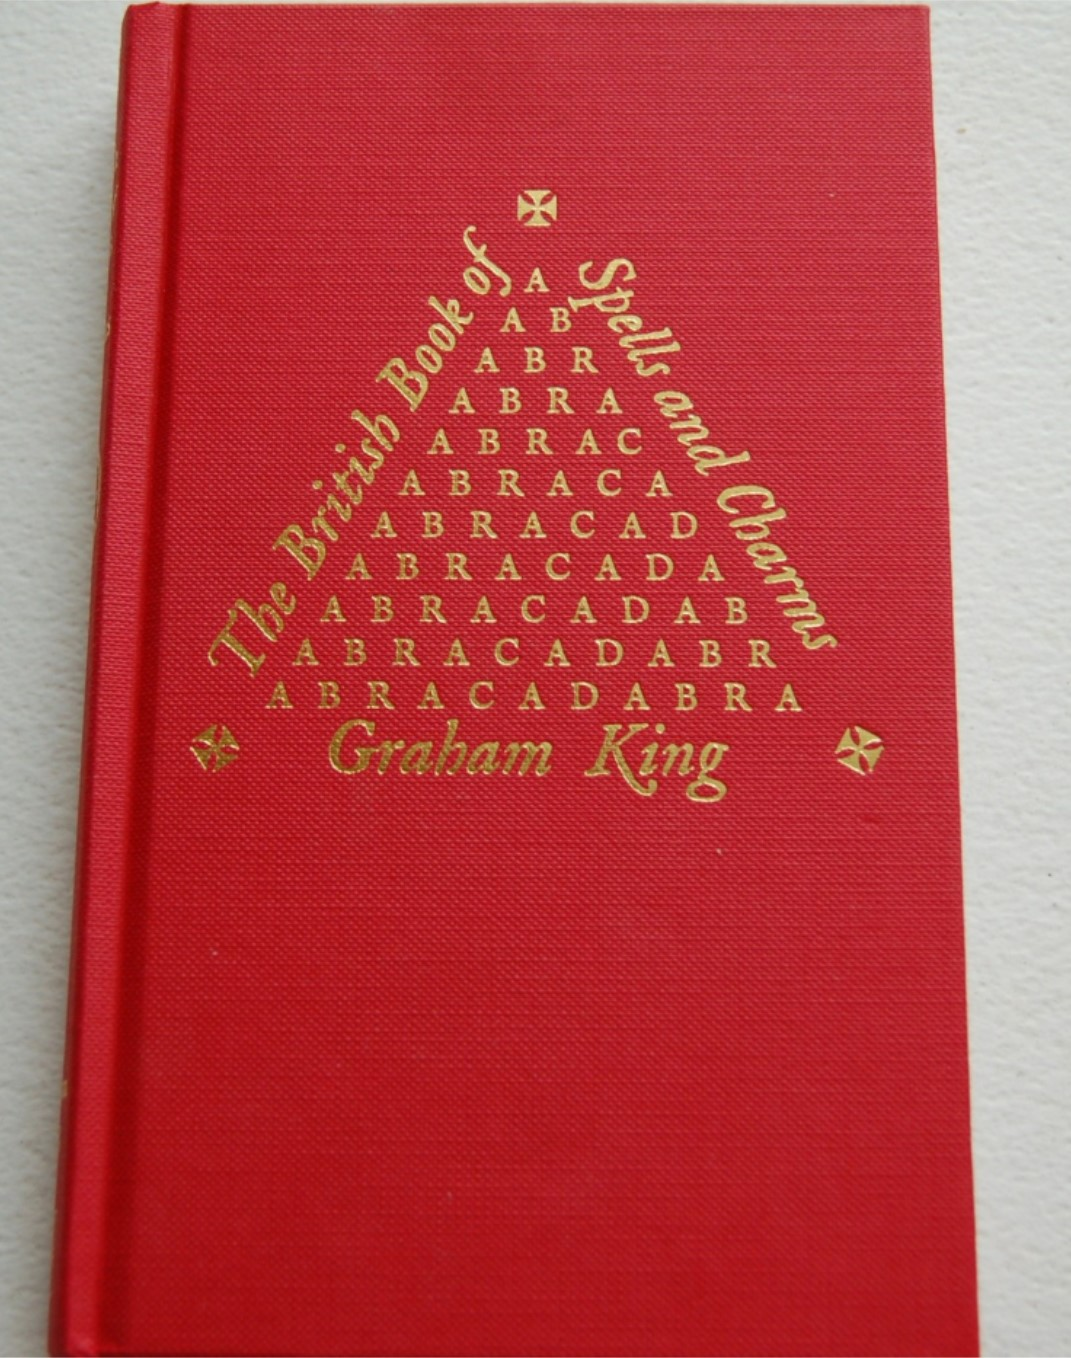 The British Book of Spells and Charms by Graham King